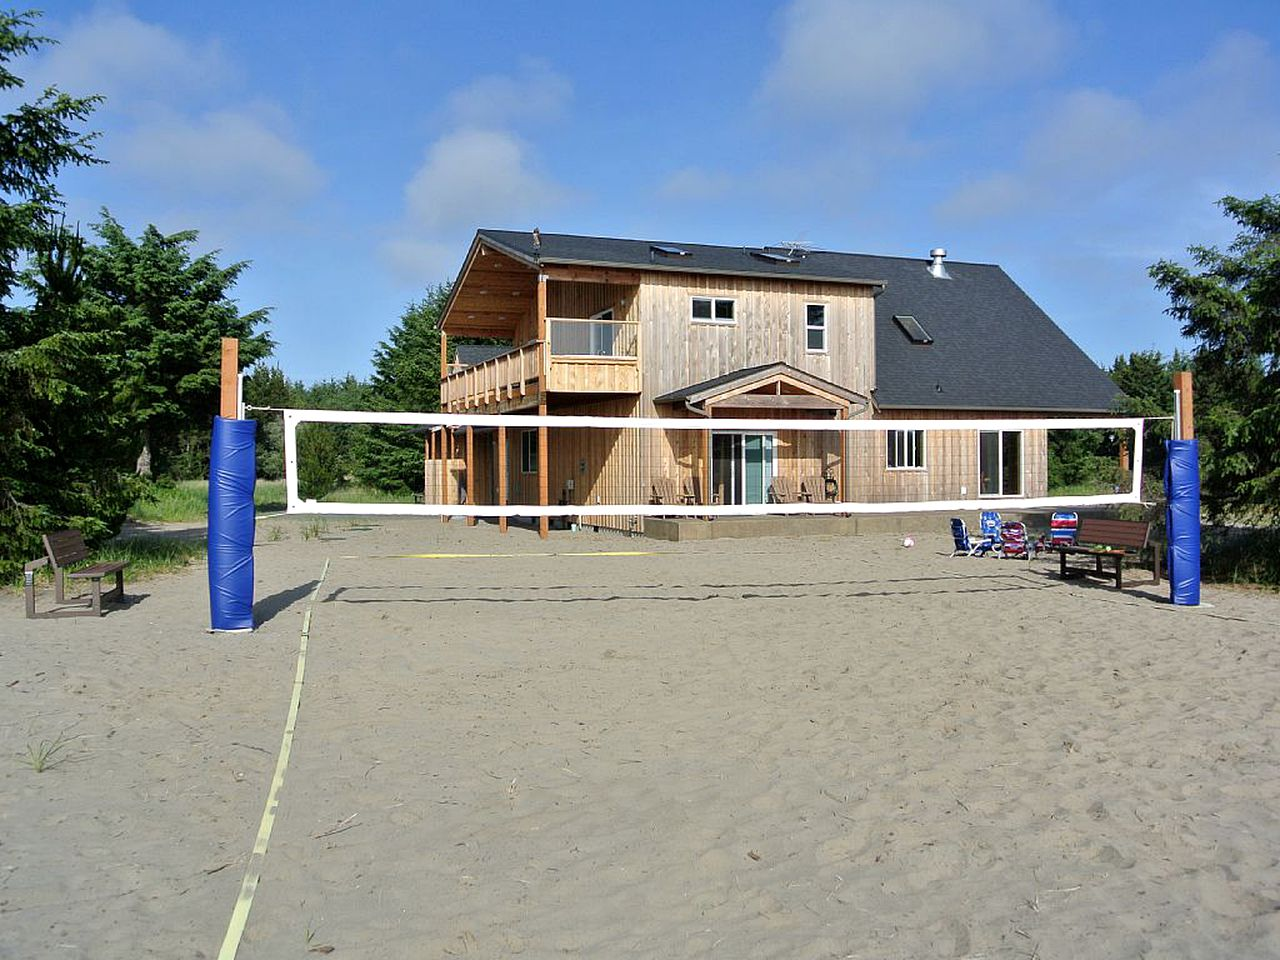 Cabins (Long Beach, Washington, United States)